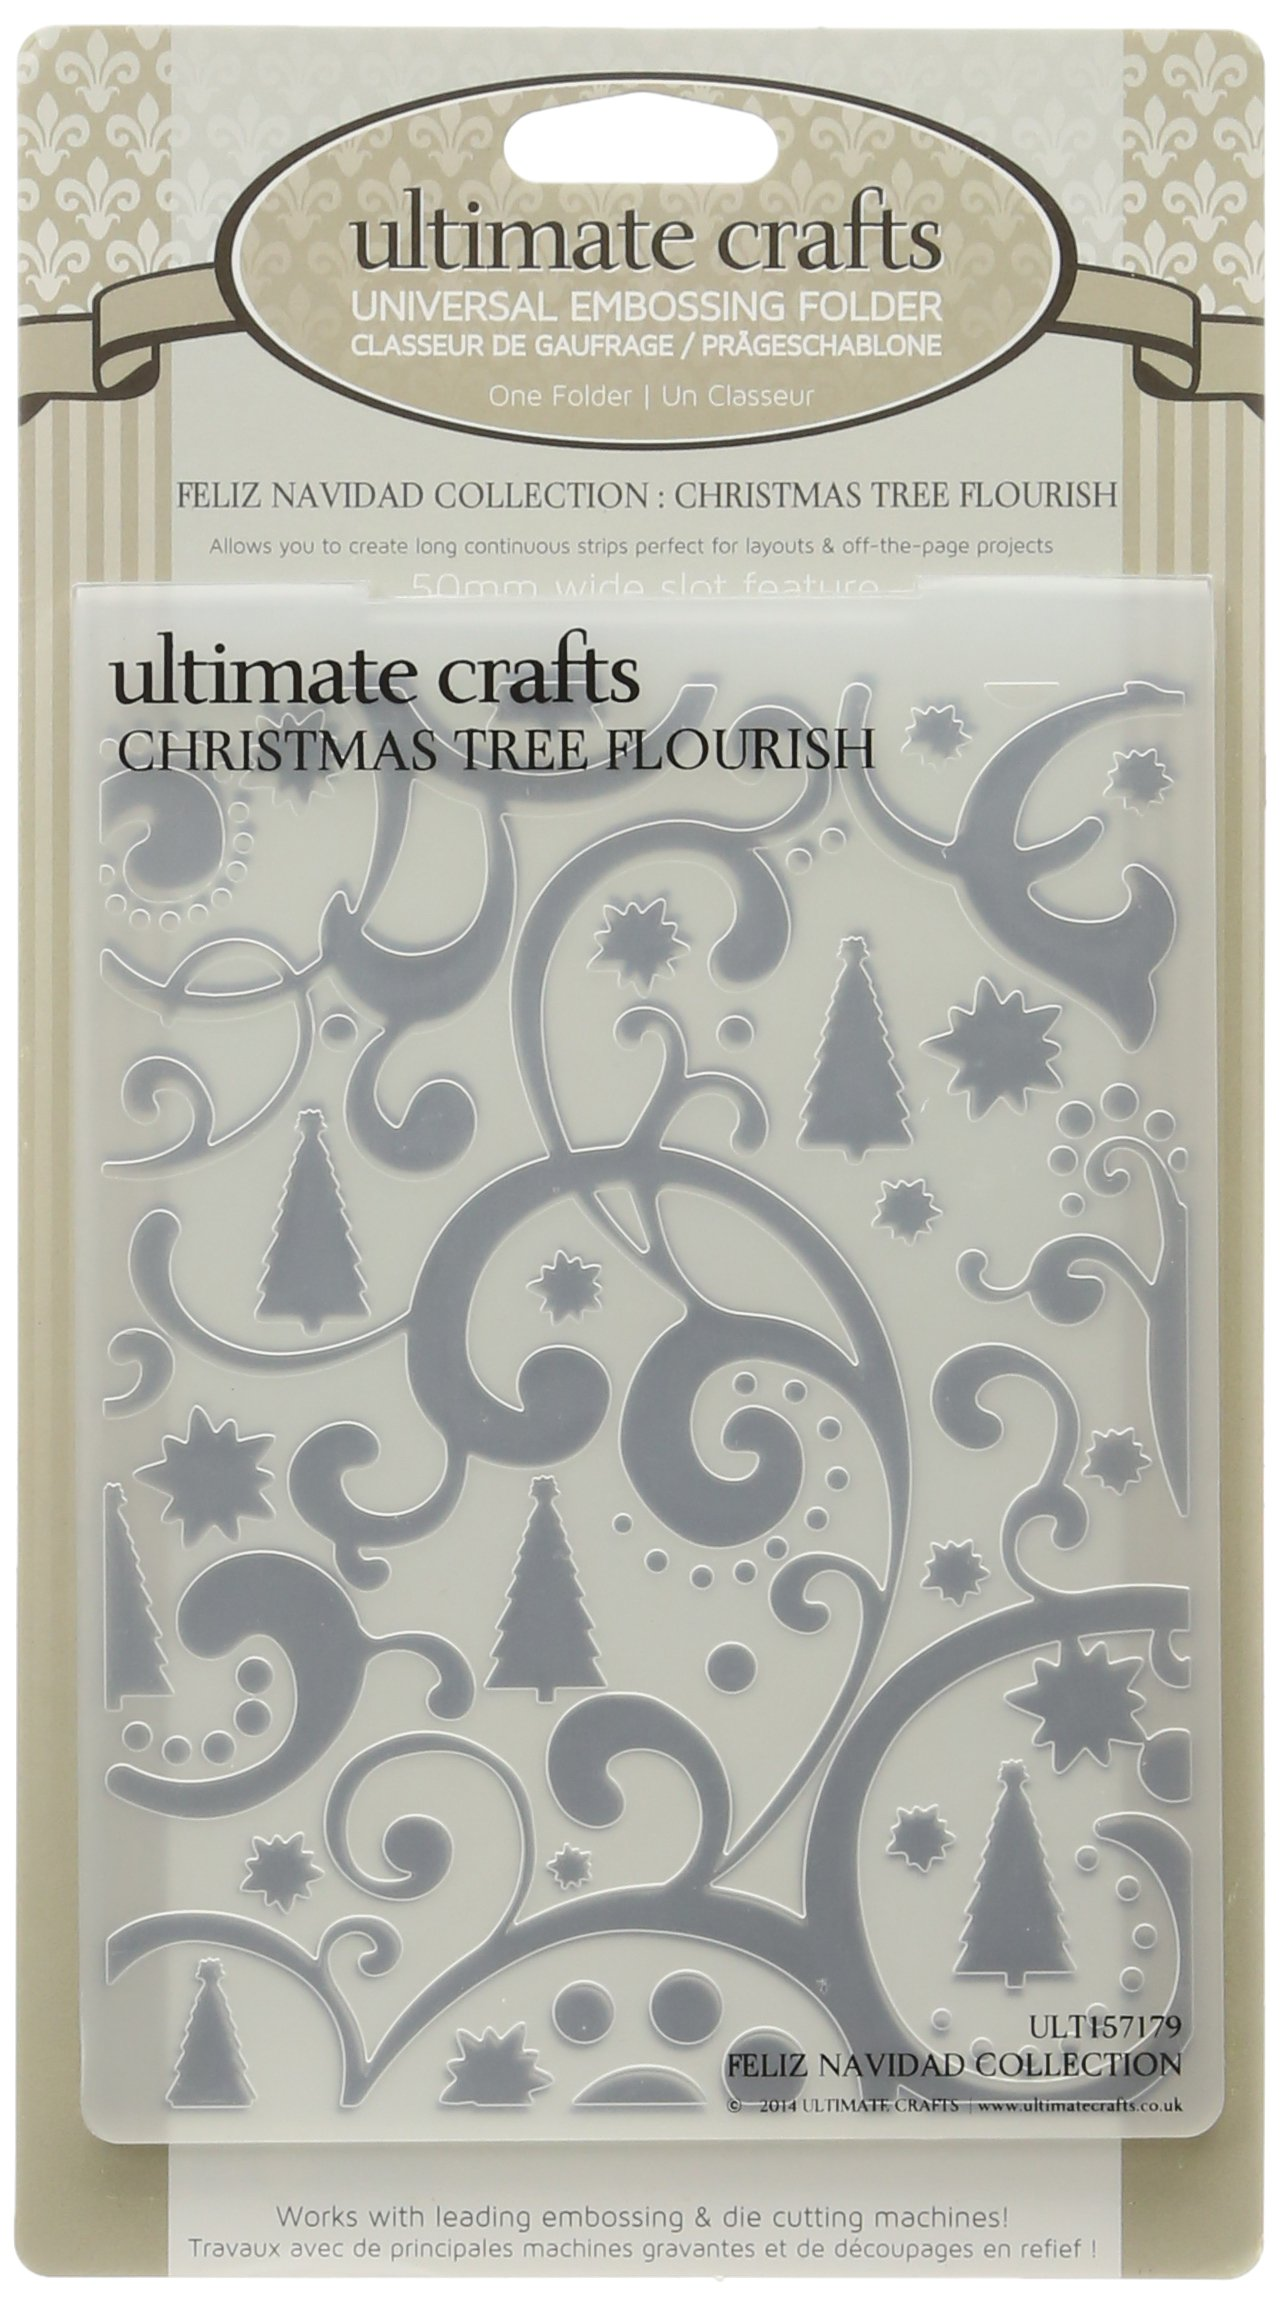 Ultimate Crafts Embossing Folder, 4 by 6-Inch, Christmas Tree Flourish by Ultimate Crafts